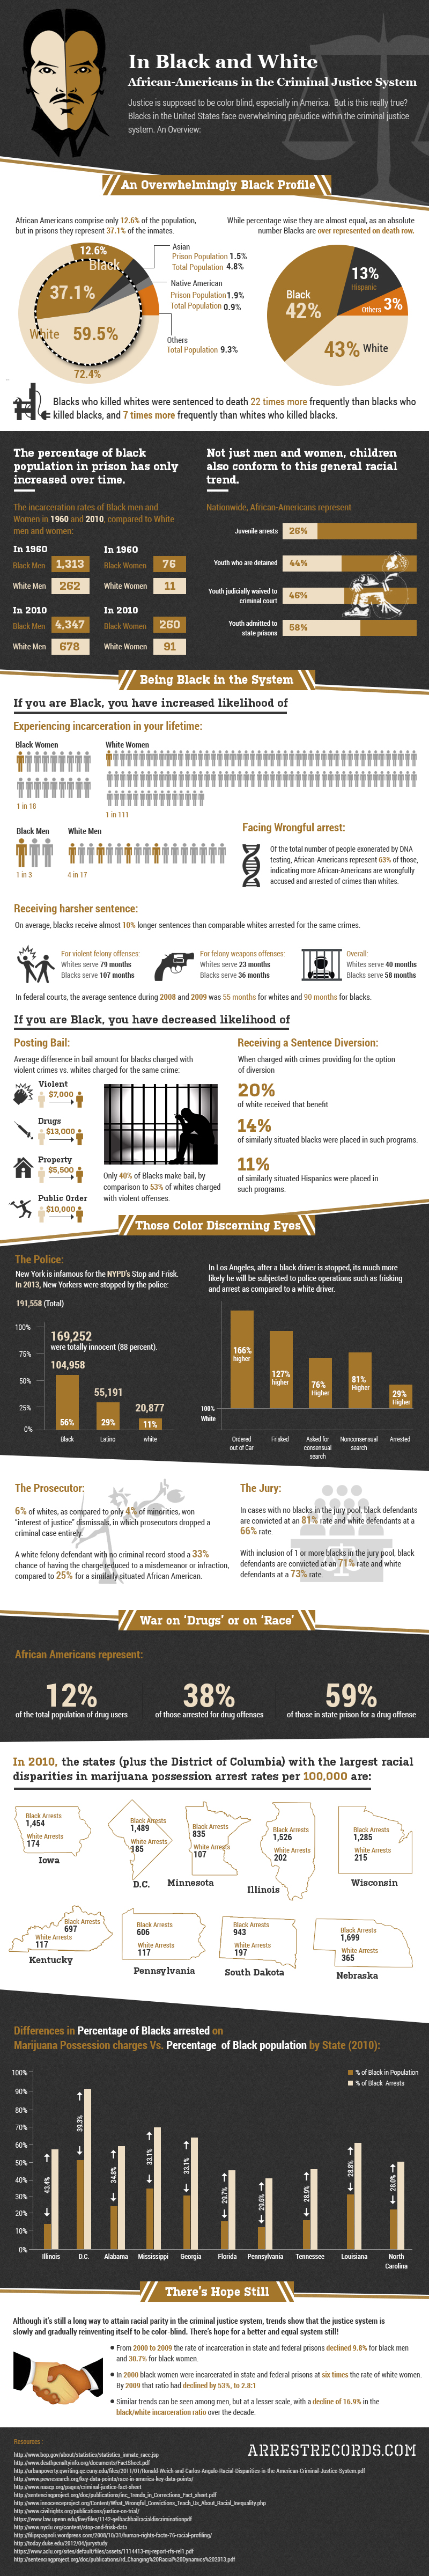 "african americans and the prison system 2 essay The term ""school to prison pipeline"" was created to illustrate how the criminal justice system paves a pathway to prison for blacks when african americans are still very young the sentencing project has found that black males born in 2001 have a 32 percent chance of being incarcerated at some point."